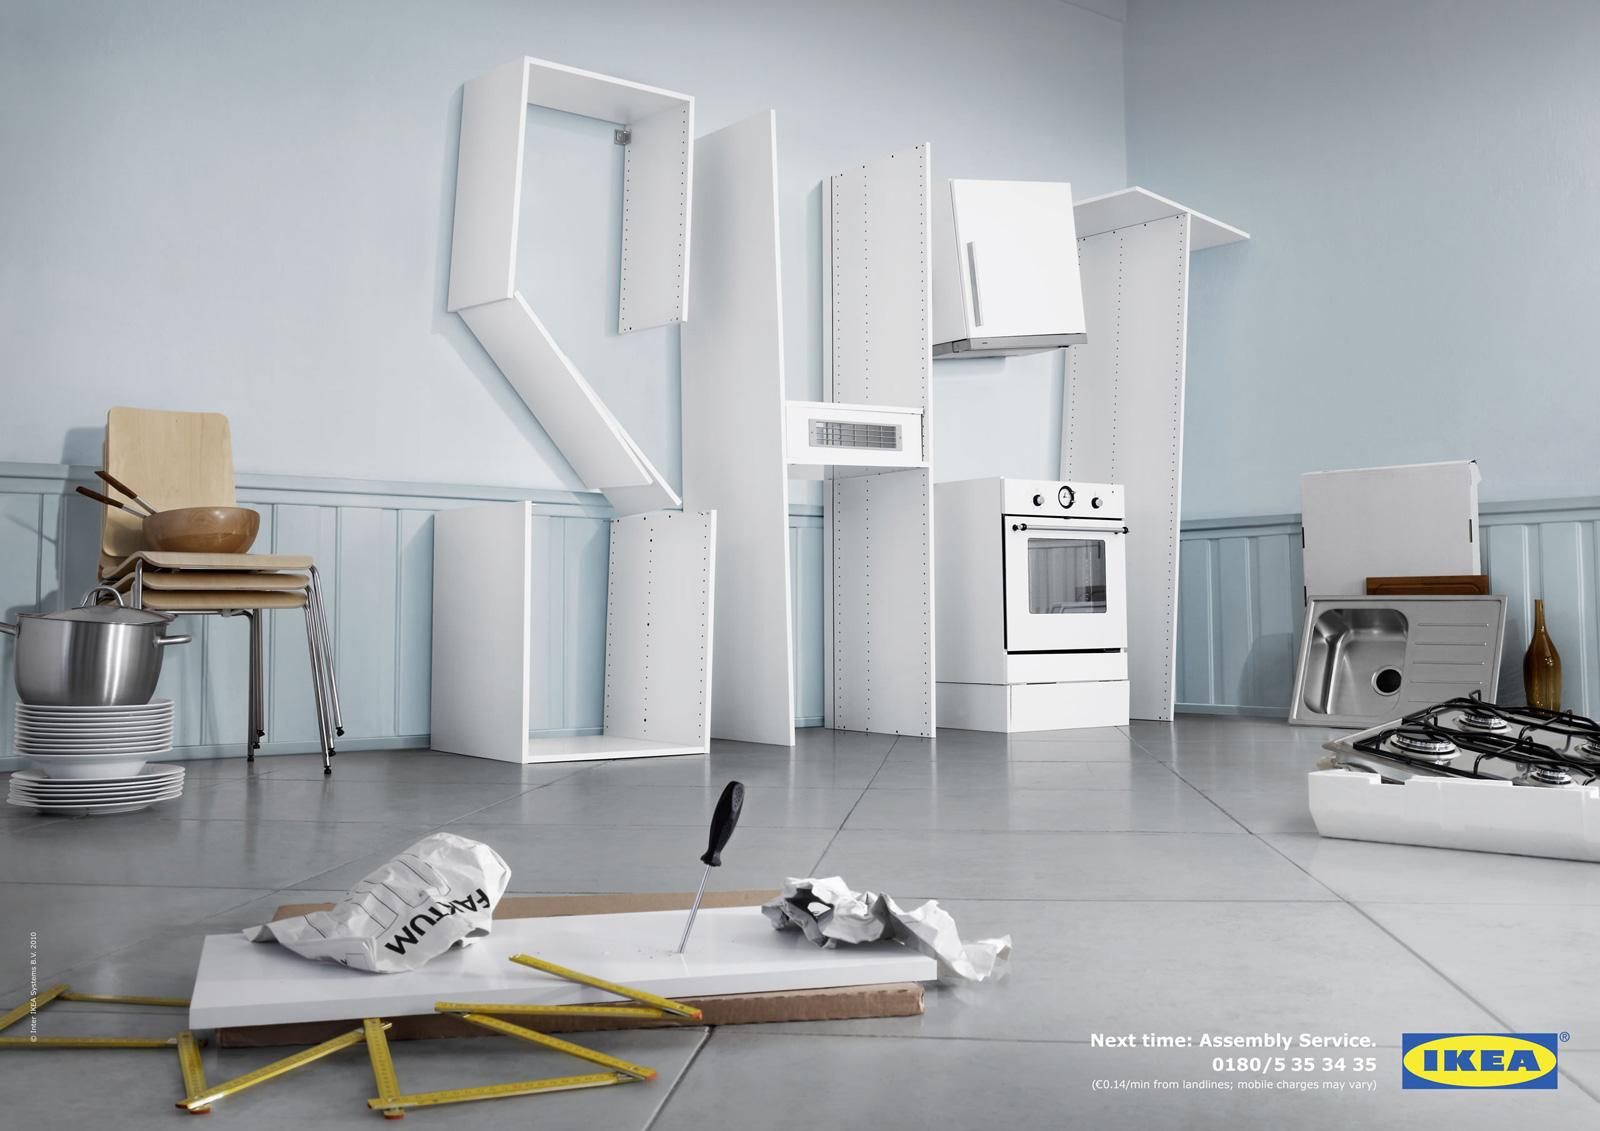 IKEA Print Advert By Grabarz Partner Kitchen Shit Ads Of The - Kitchen ad